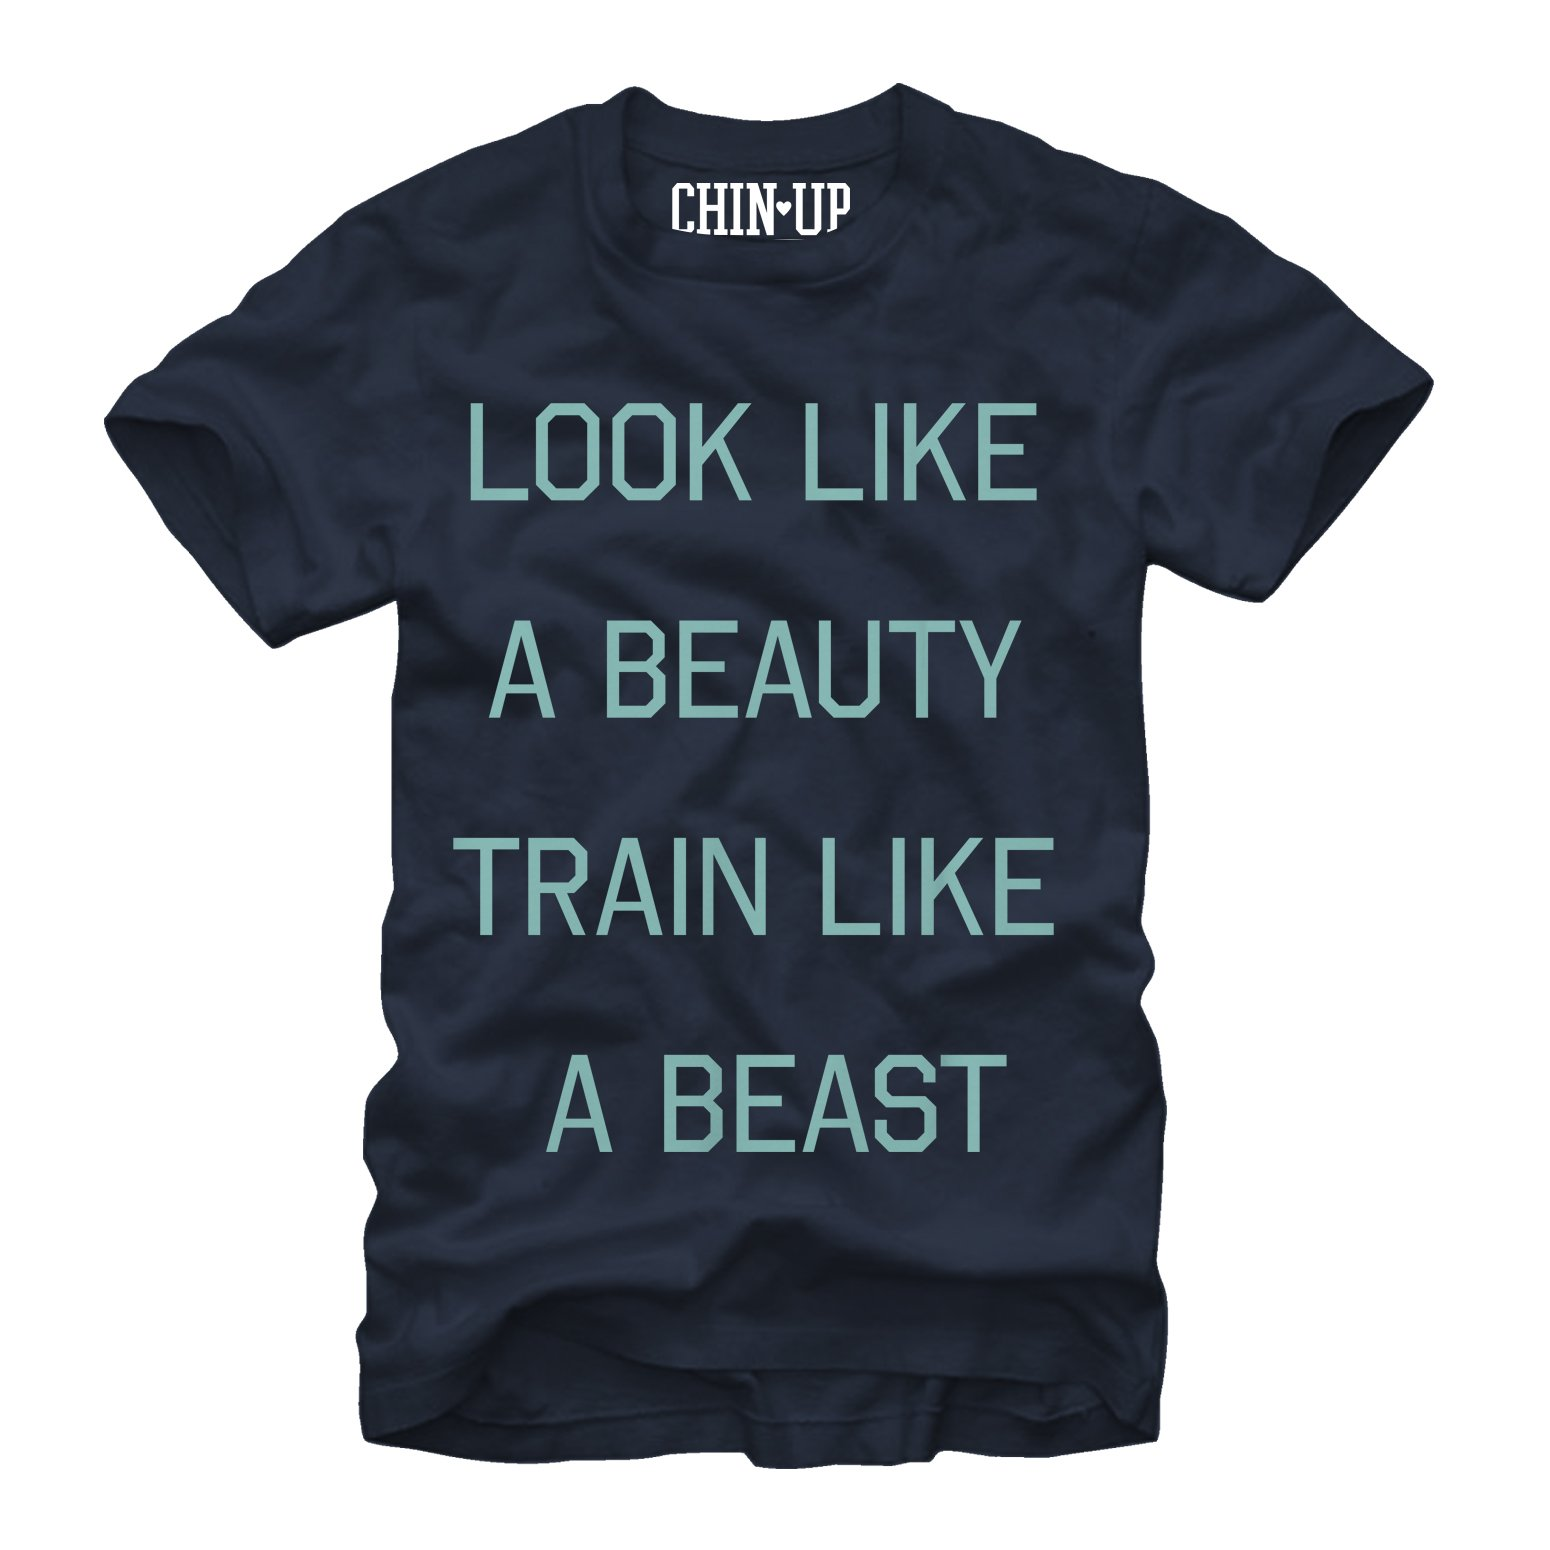 Chin Up Women's Beast T-Shirt